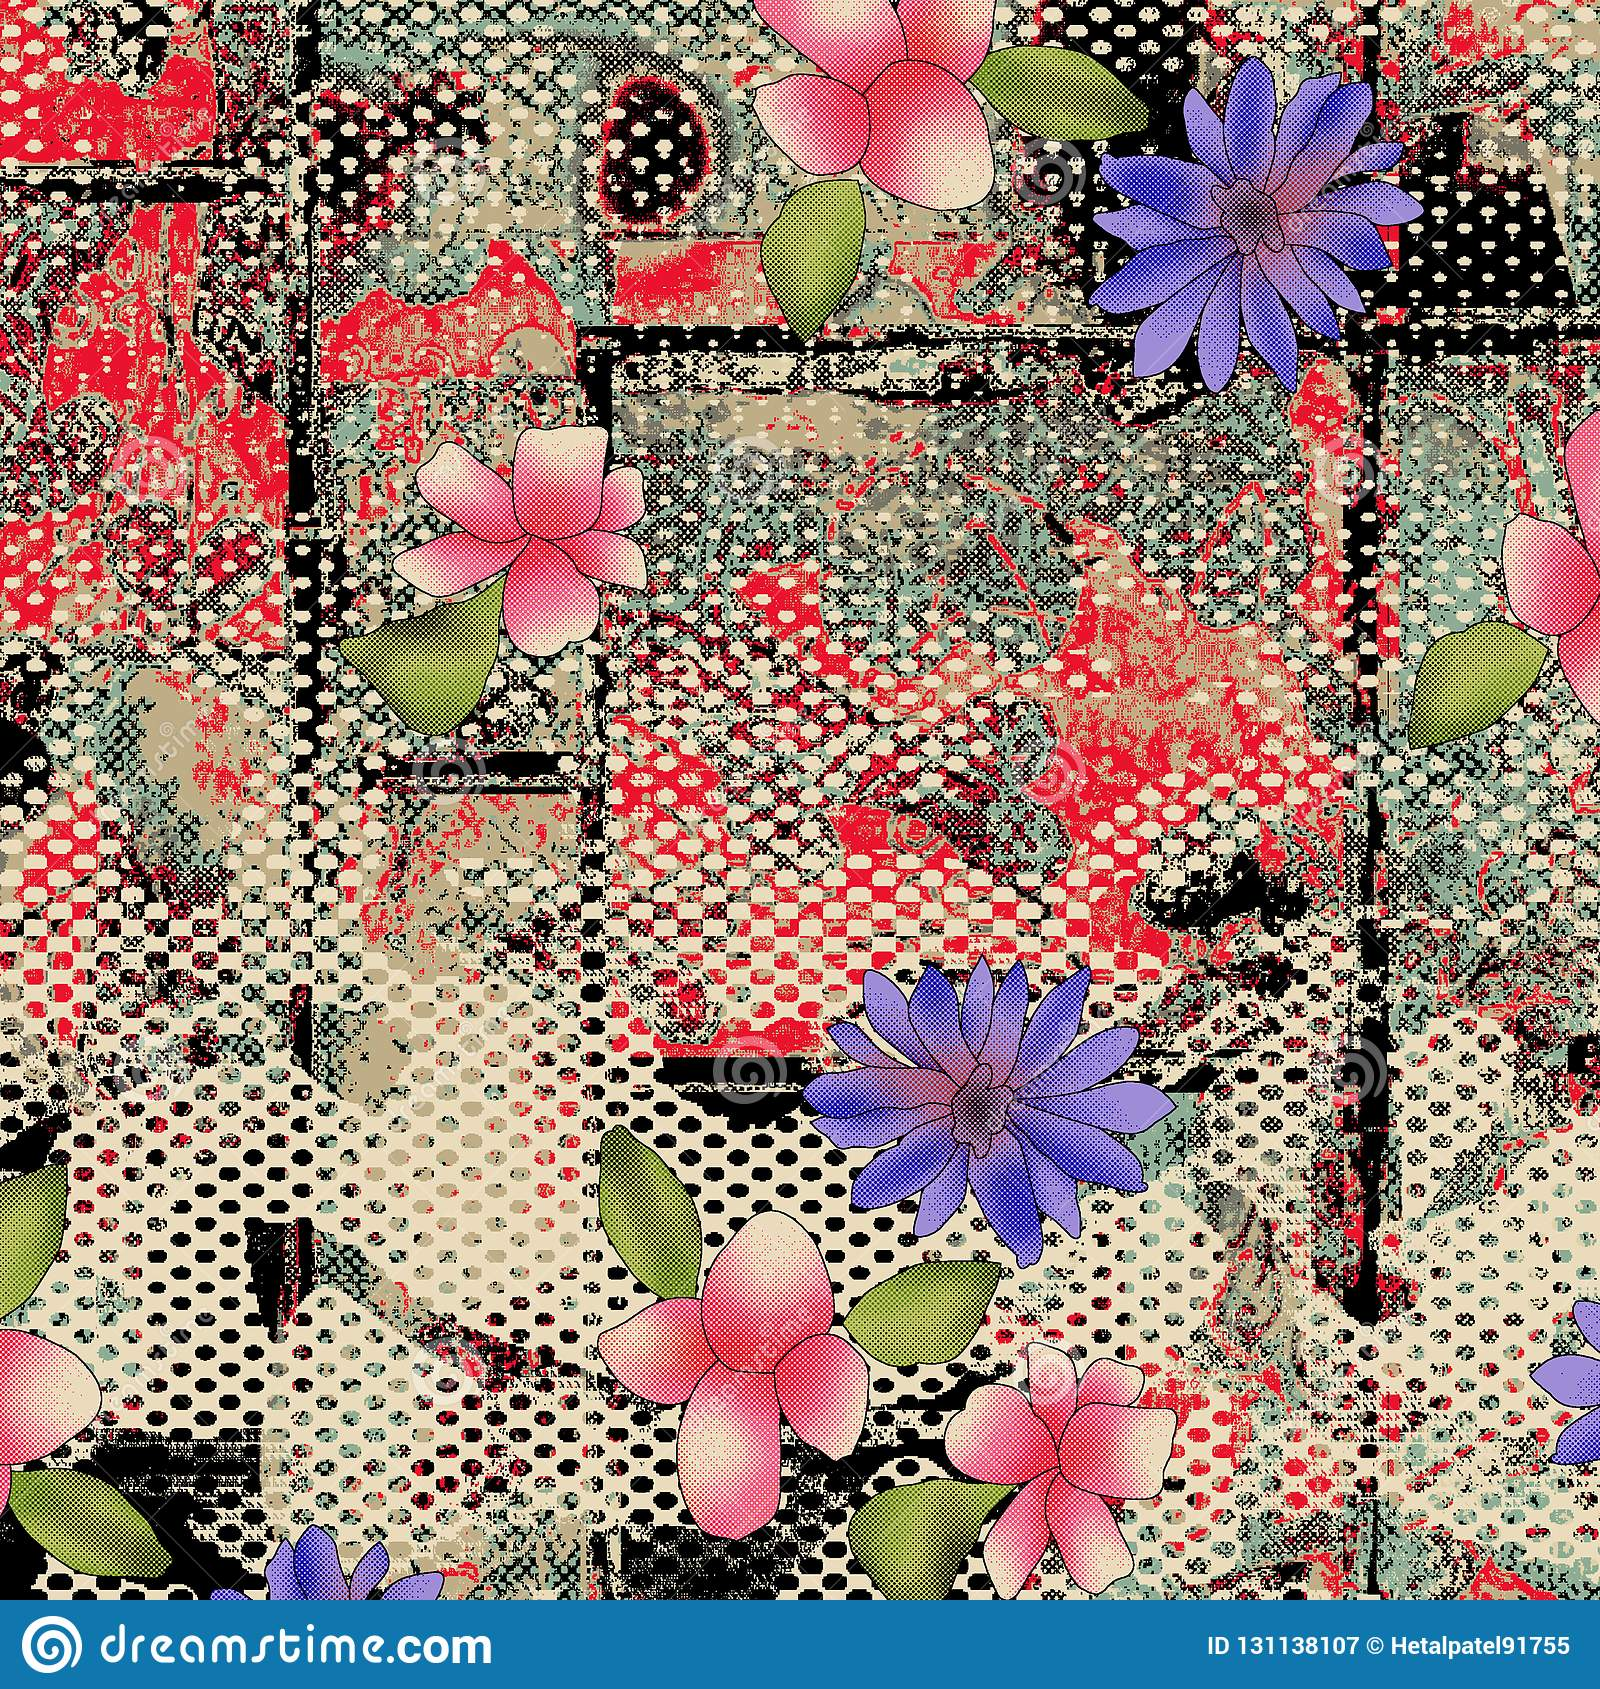 WATERCOLOR FLOWER PATTERN on textures